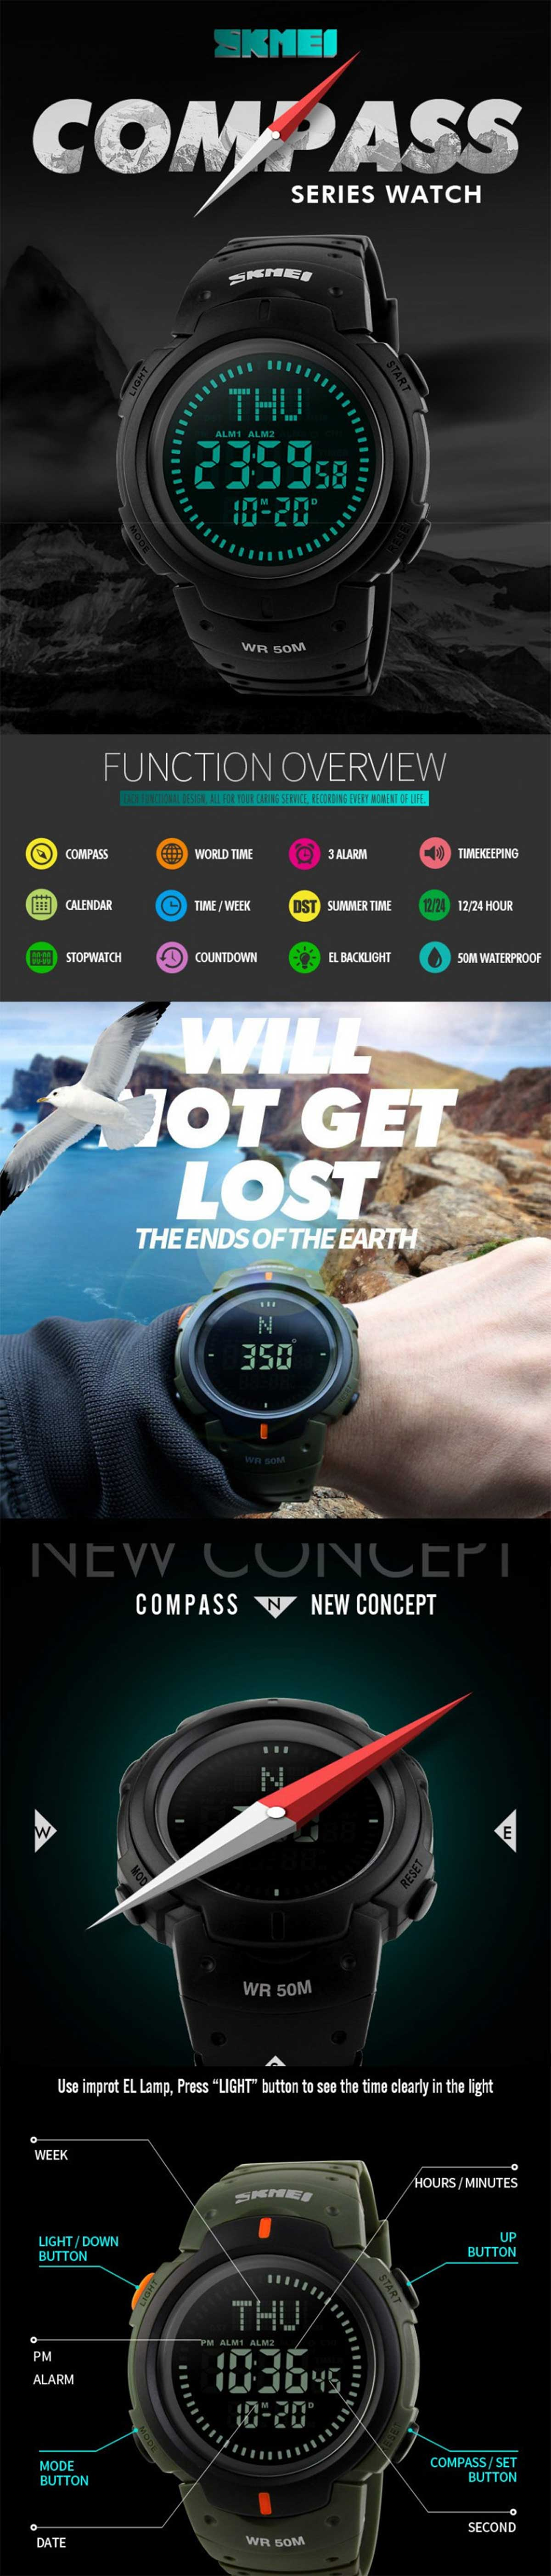 Skmei 1231 Digital Compass Sports Watch